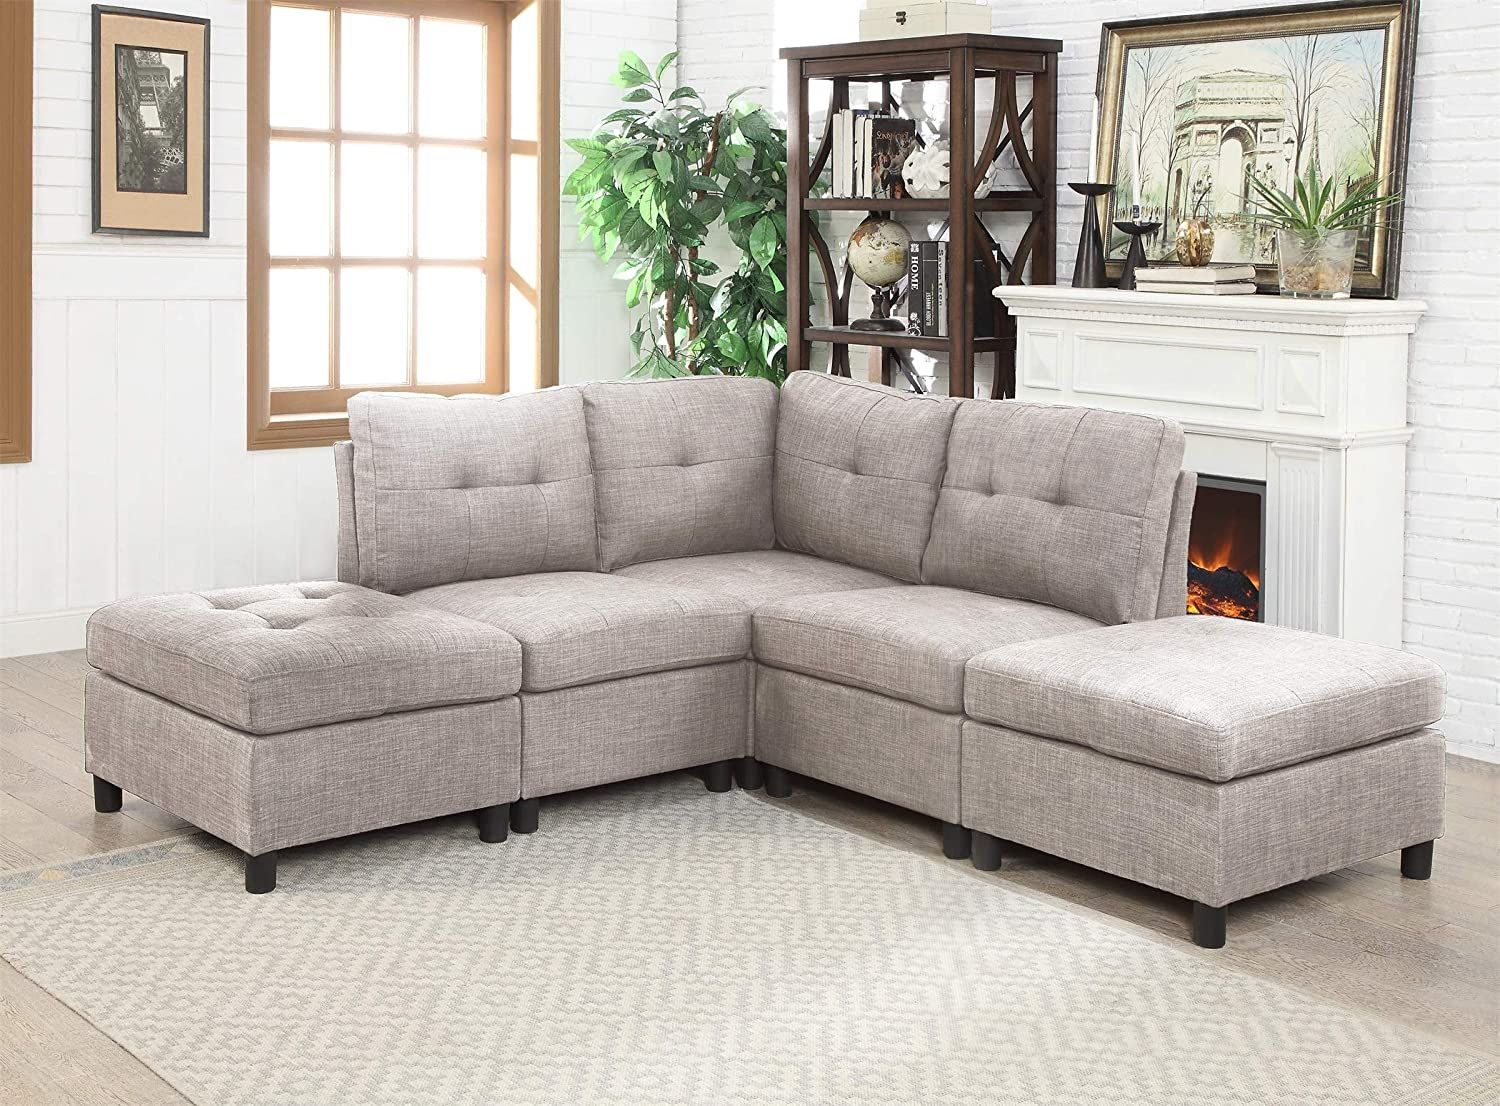 Amazon Com Modular 5 Piece Sectional Sofa Corner Armless Chaise